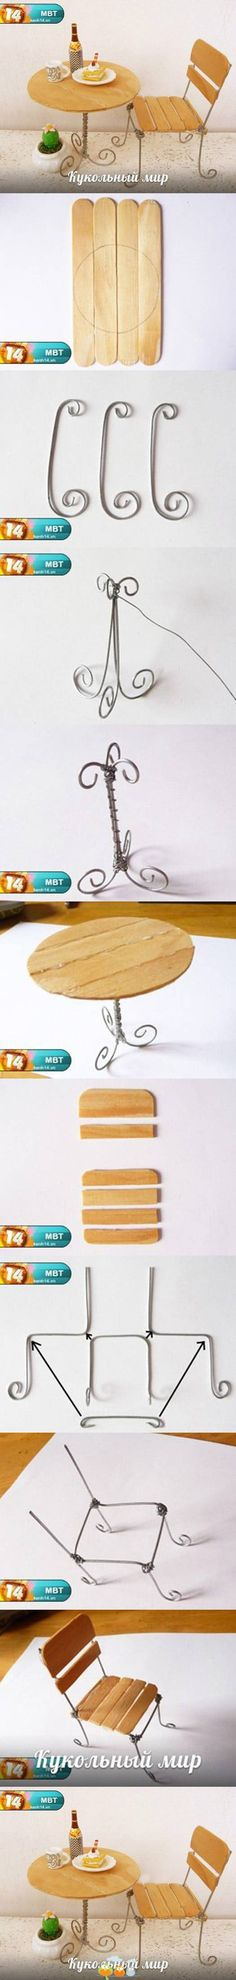 table and chair from tongue depressors and paper clips or regular wire! cute for a dollhouse or somethign for a little girl when you can't sew them a doll! :D